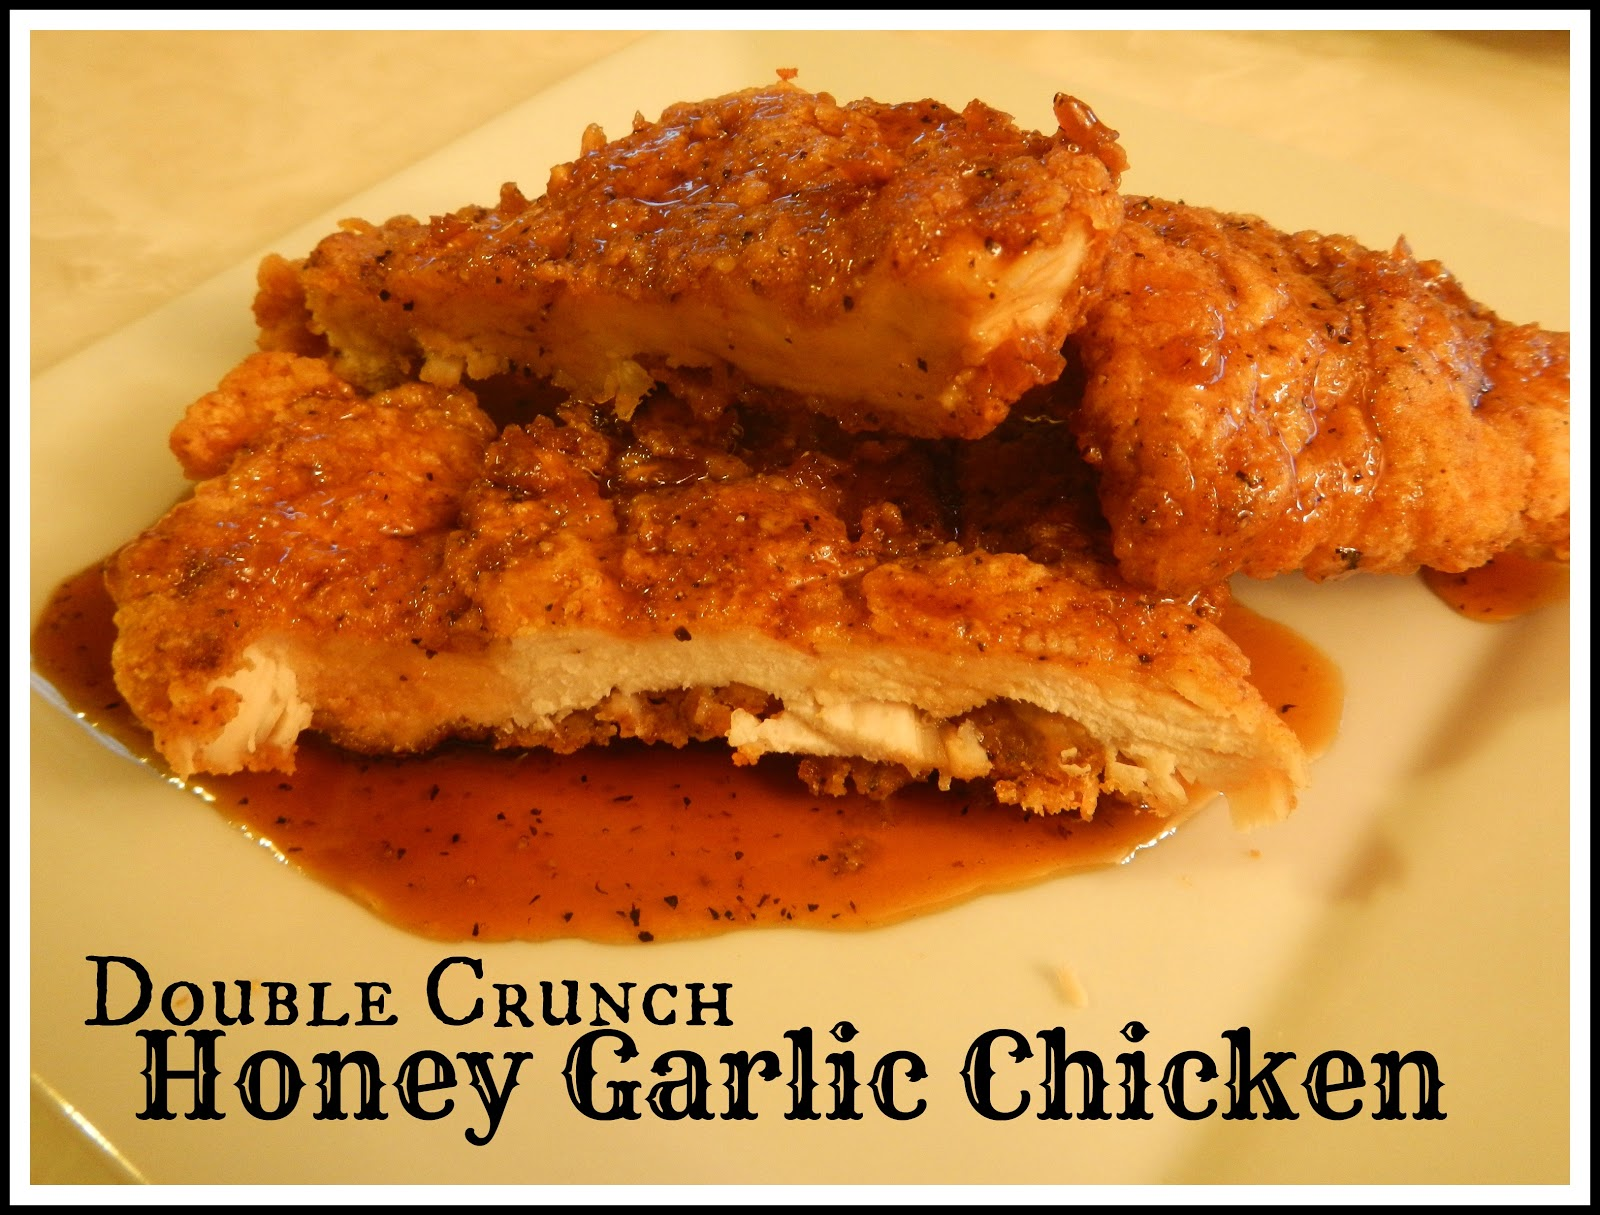 Double Crunch Honey Garlic Pork Chops. Juicy on the inside but super crunchy on the outside, these double dipped pork chops get dipped in an easy, flavourful Honey Garlic Sauce. Double Crunch Honey Garlic Pork Chops. Fully cooked to tender juicy perfection These Honey Garlic Pork Chops taste even.